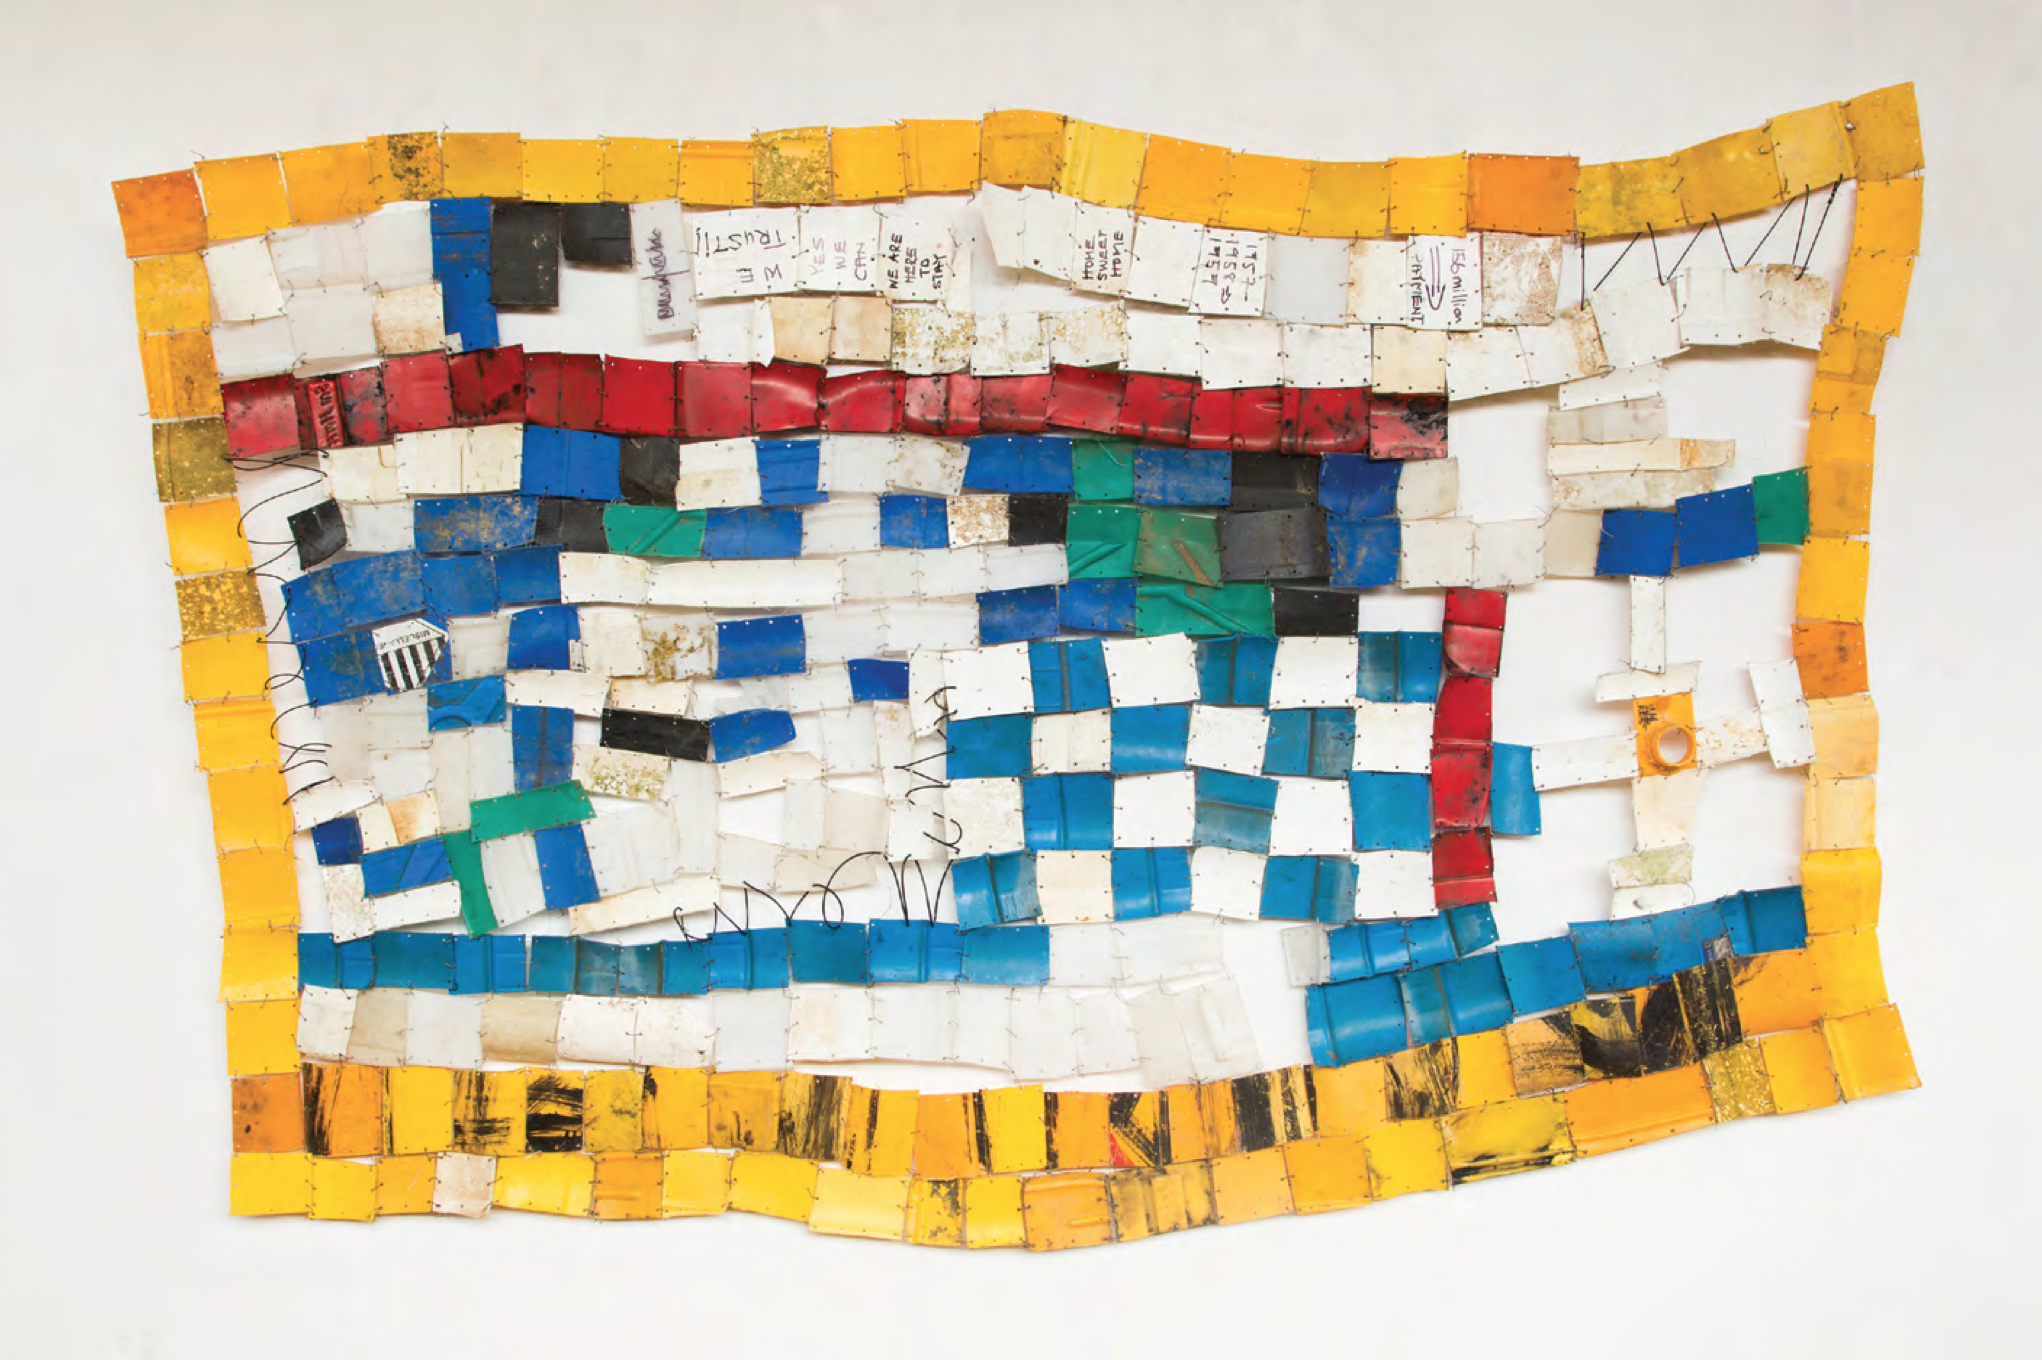 Serge Attukwei Clottey, American Lottery, 2015. Plastic, wire and oil paint, 94 x 51 inches. Courtesy of the artist.